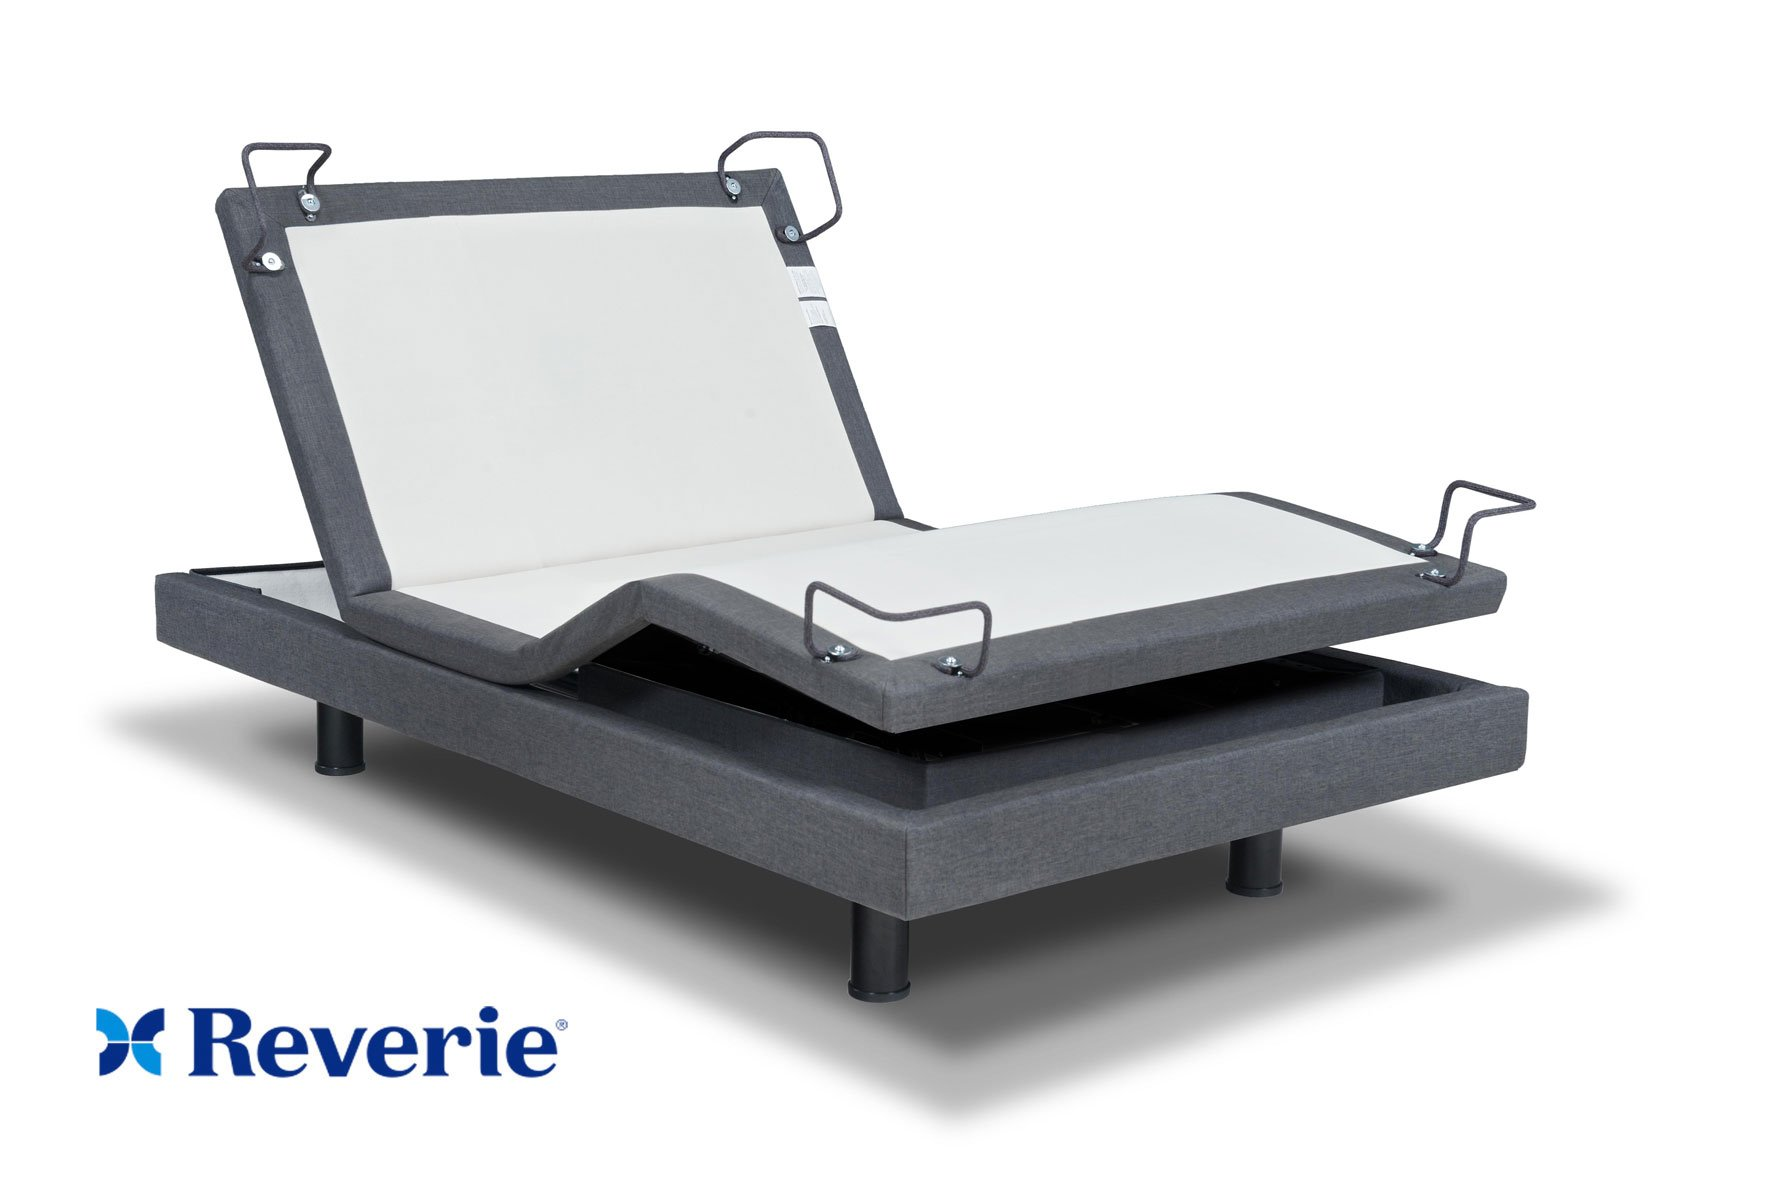 Reverie 7S Adjustable Bed From The Makers Of The Tempurpedic Ergo W/ Bluetooth Option (Twin Xl) by Reverie